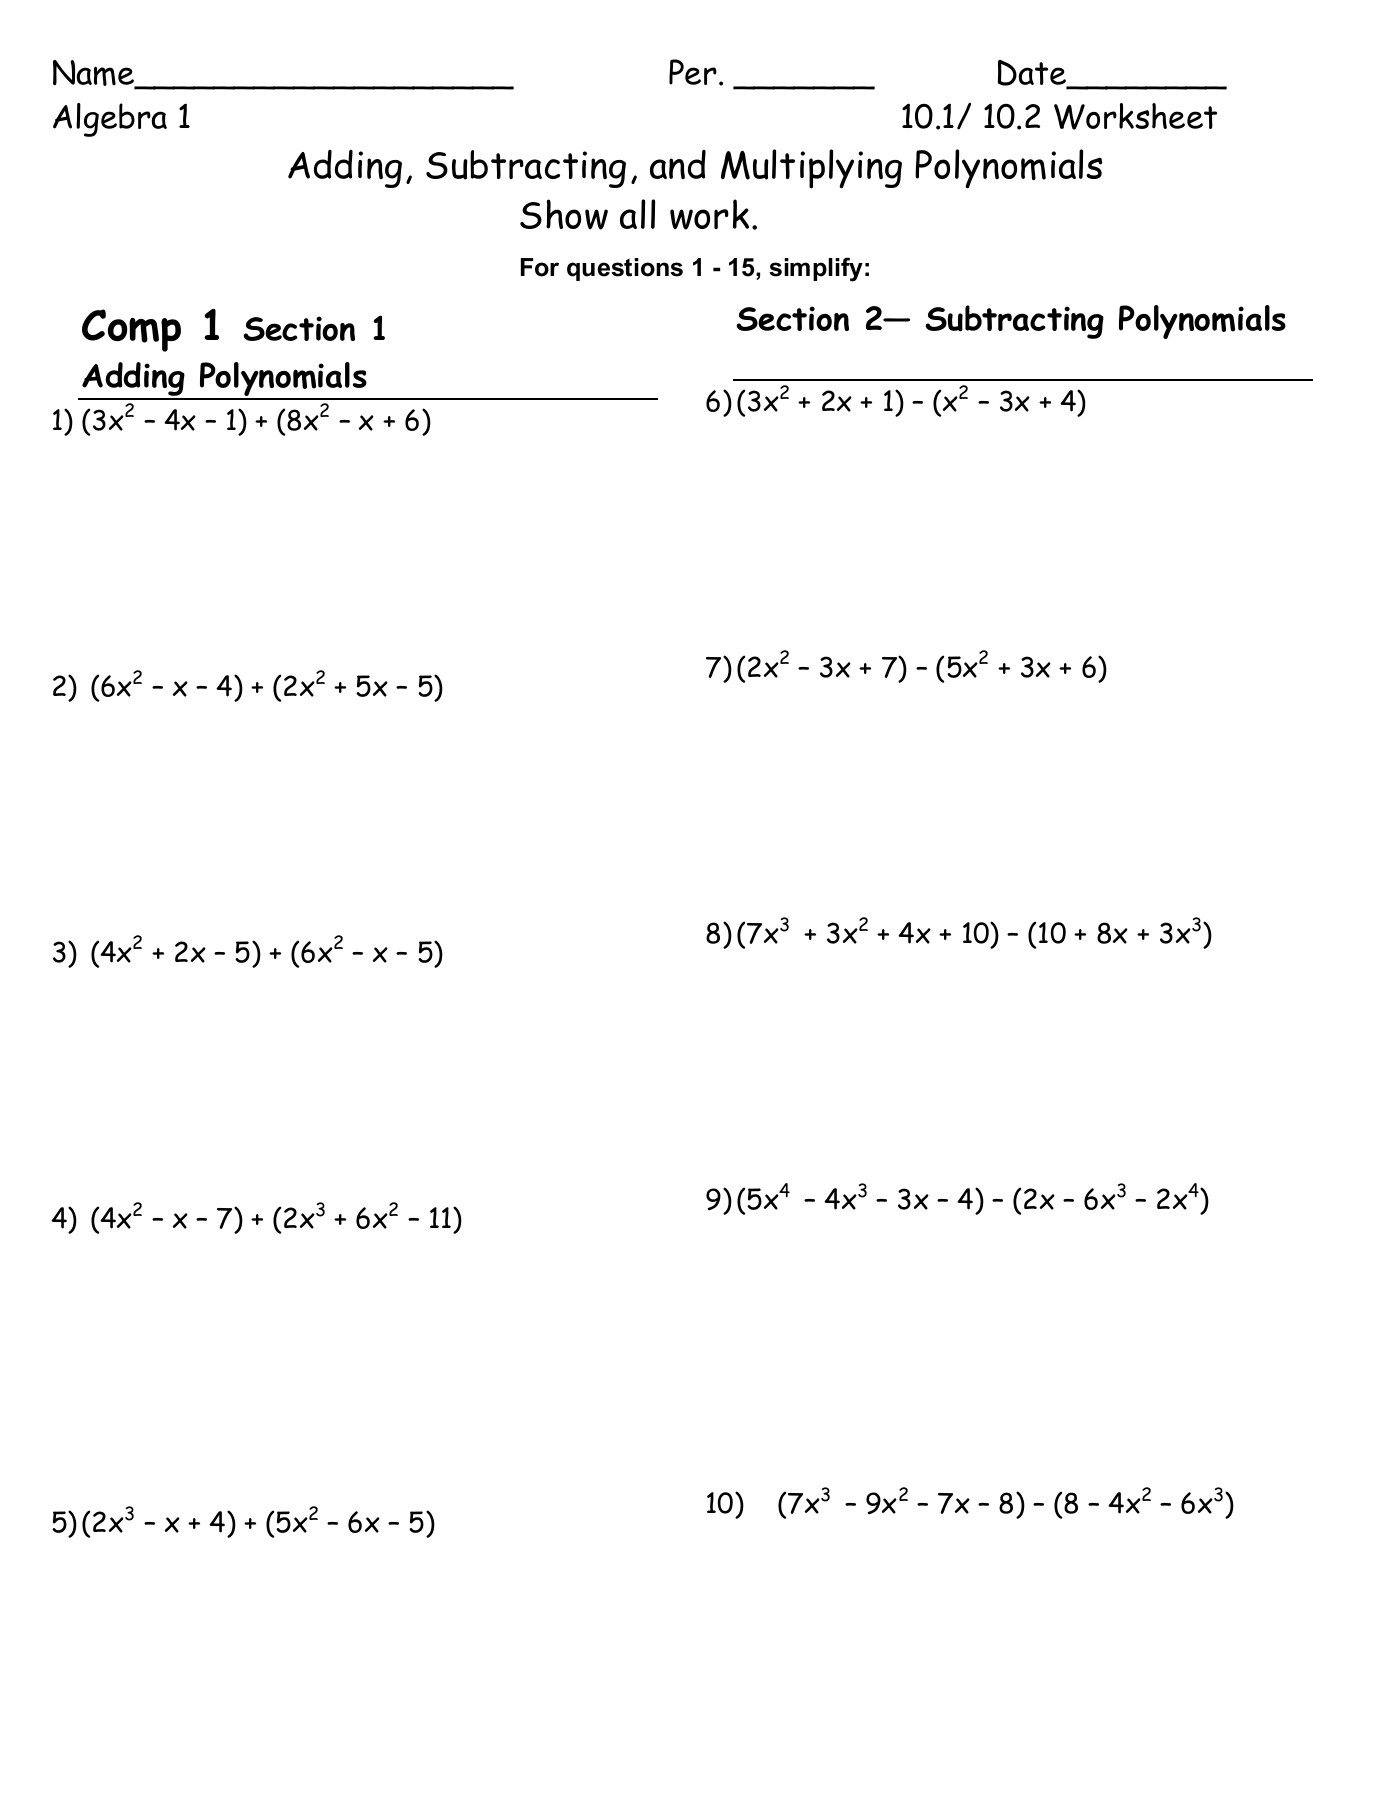 Adding And Subtracting Polynomials Worksheet Answers